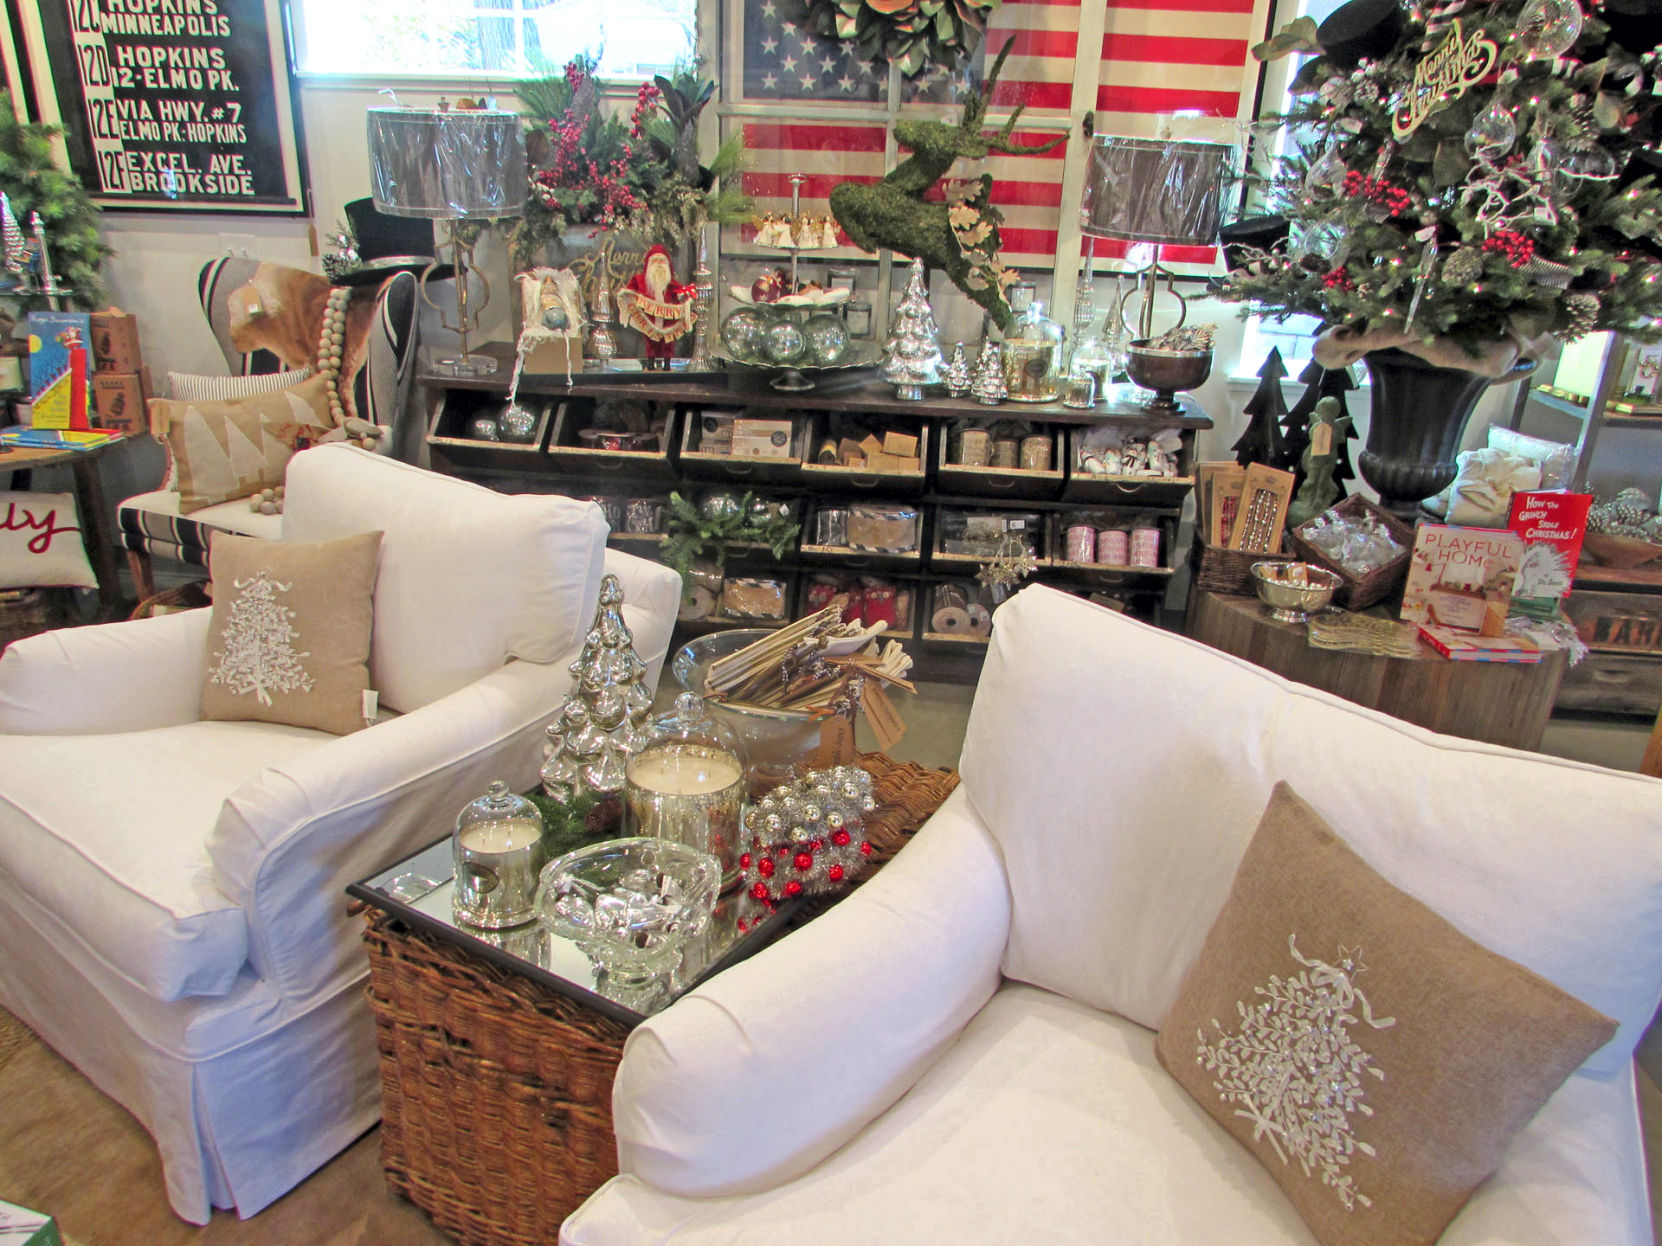 Beautiful Hands Of Heartland Opens Antique, Home Decor Store